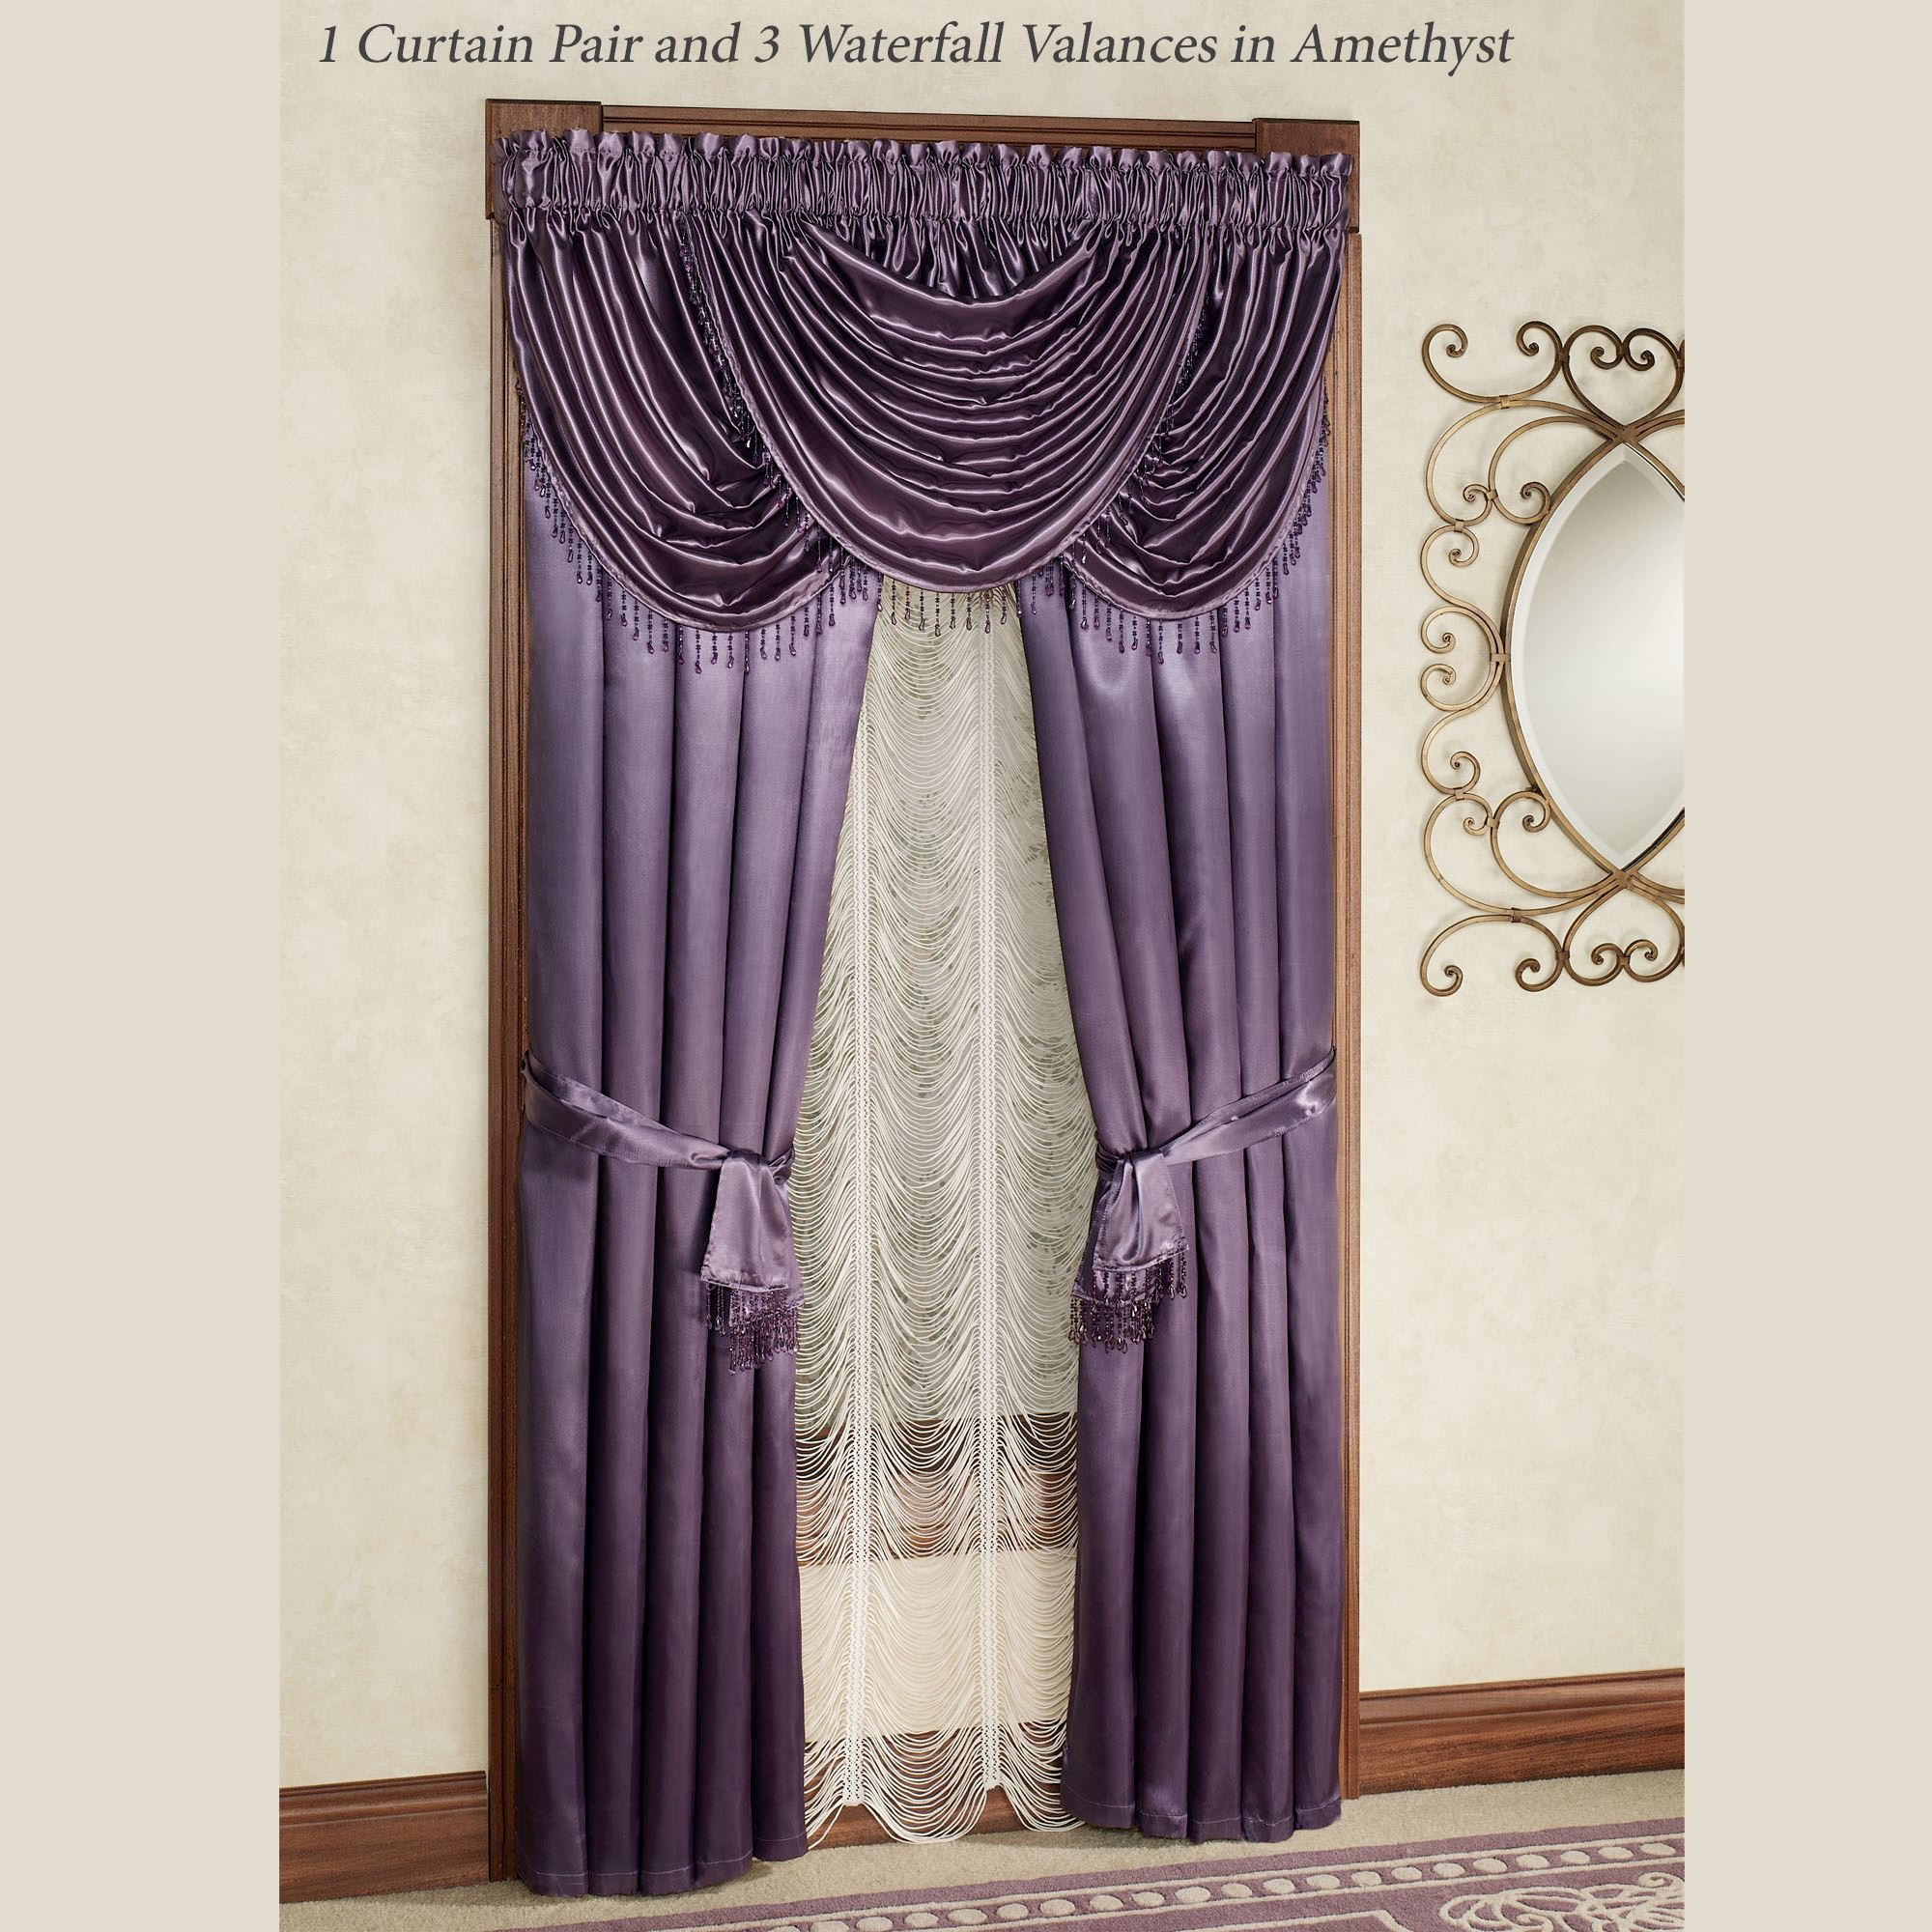 satin valances expand orchid to treatment click valance marquis window tailored x p haze purple curtain pair